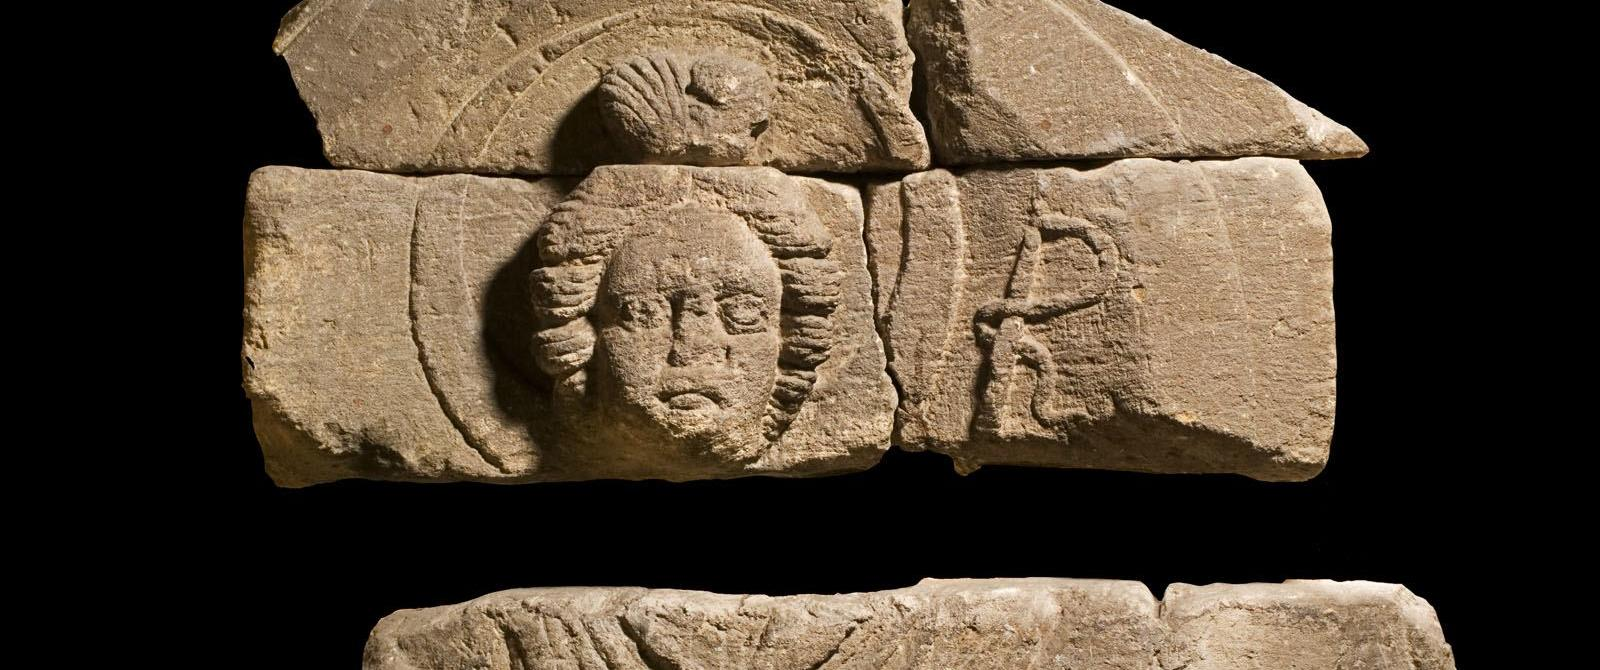 Image: Stone carving of the goddess Luna